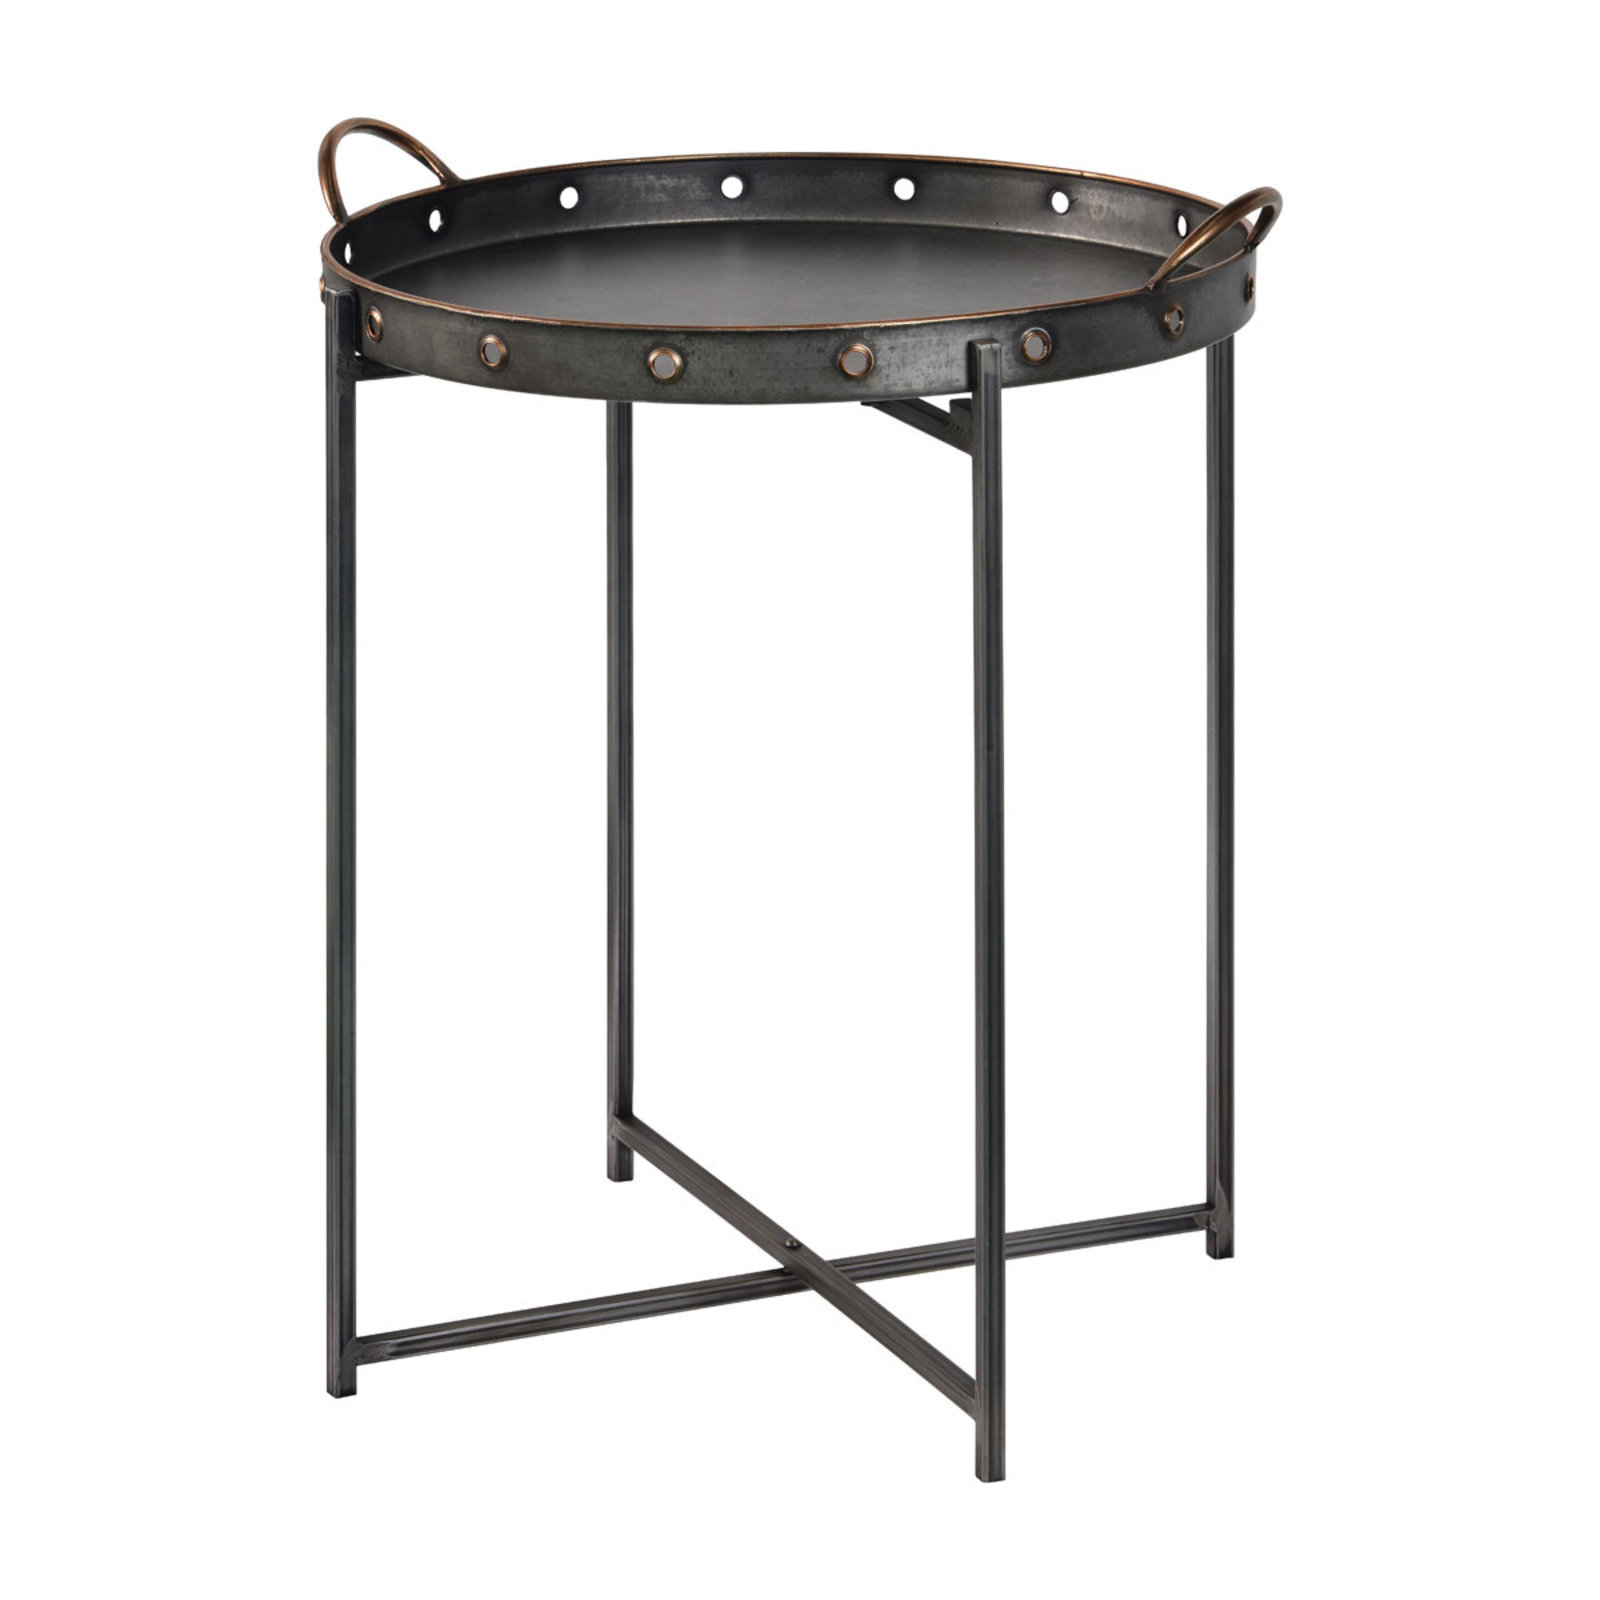 galvanized tray top accent table shades light bronze low console cabinet smoked glass side acrylic pier one furniture catalog drum set cymbals chair covers area rugs ikea storage